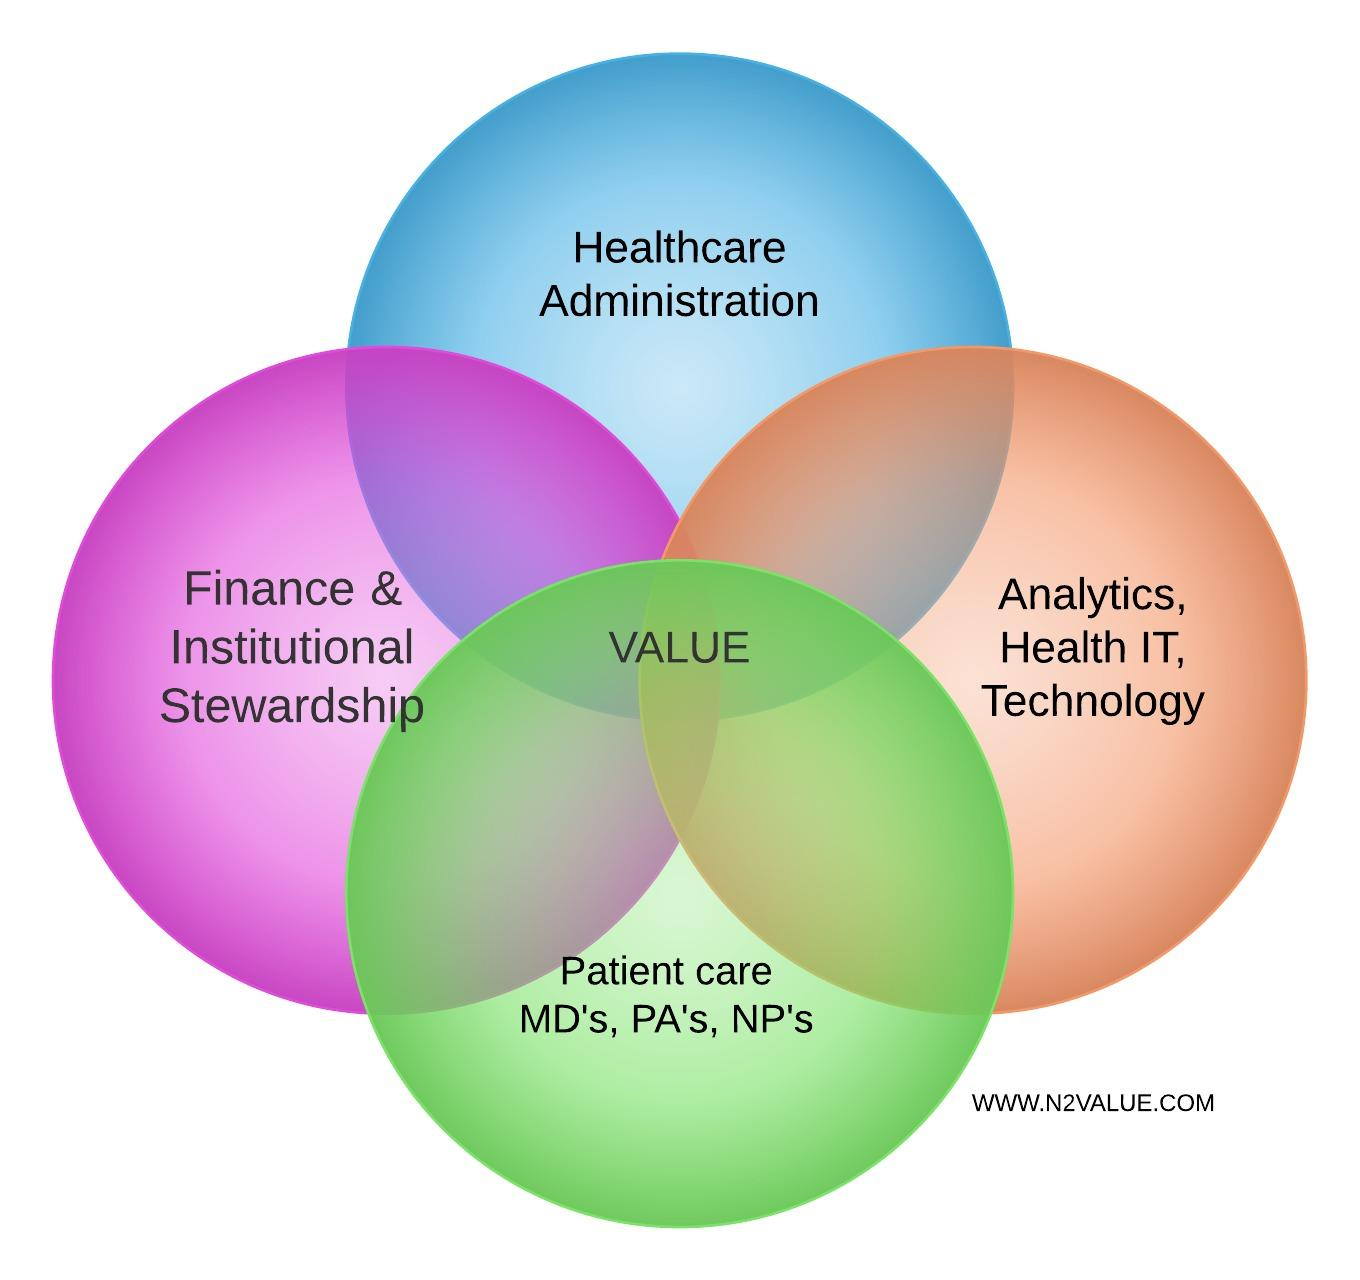 how to find the intersection in a venn diagram iphone headphone wiring about me volume value healthcare blog